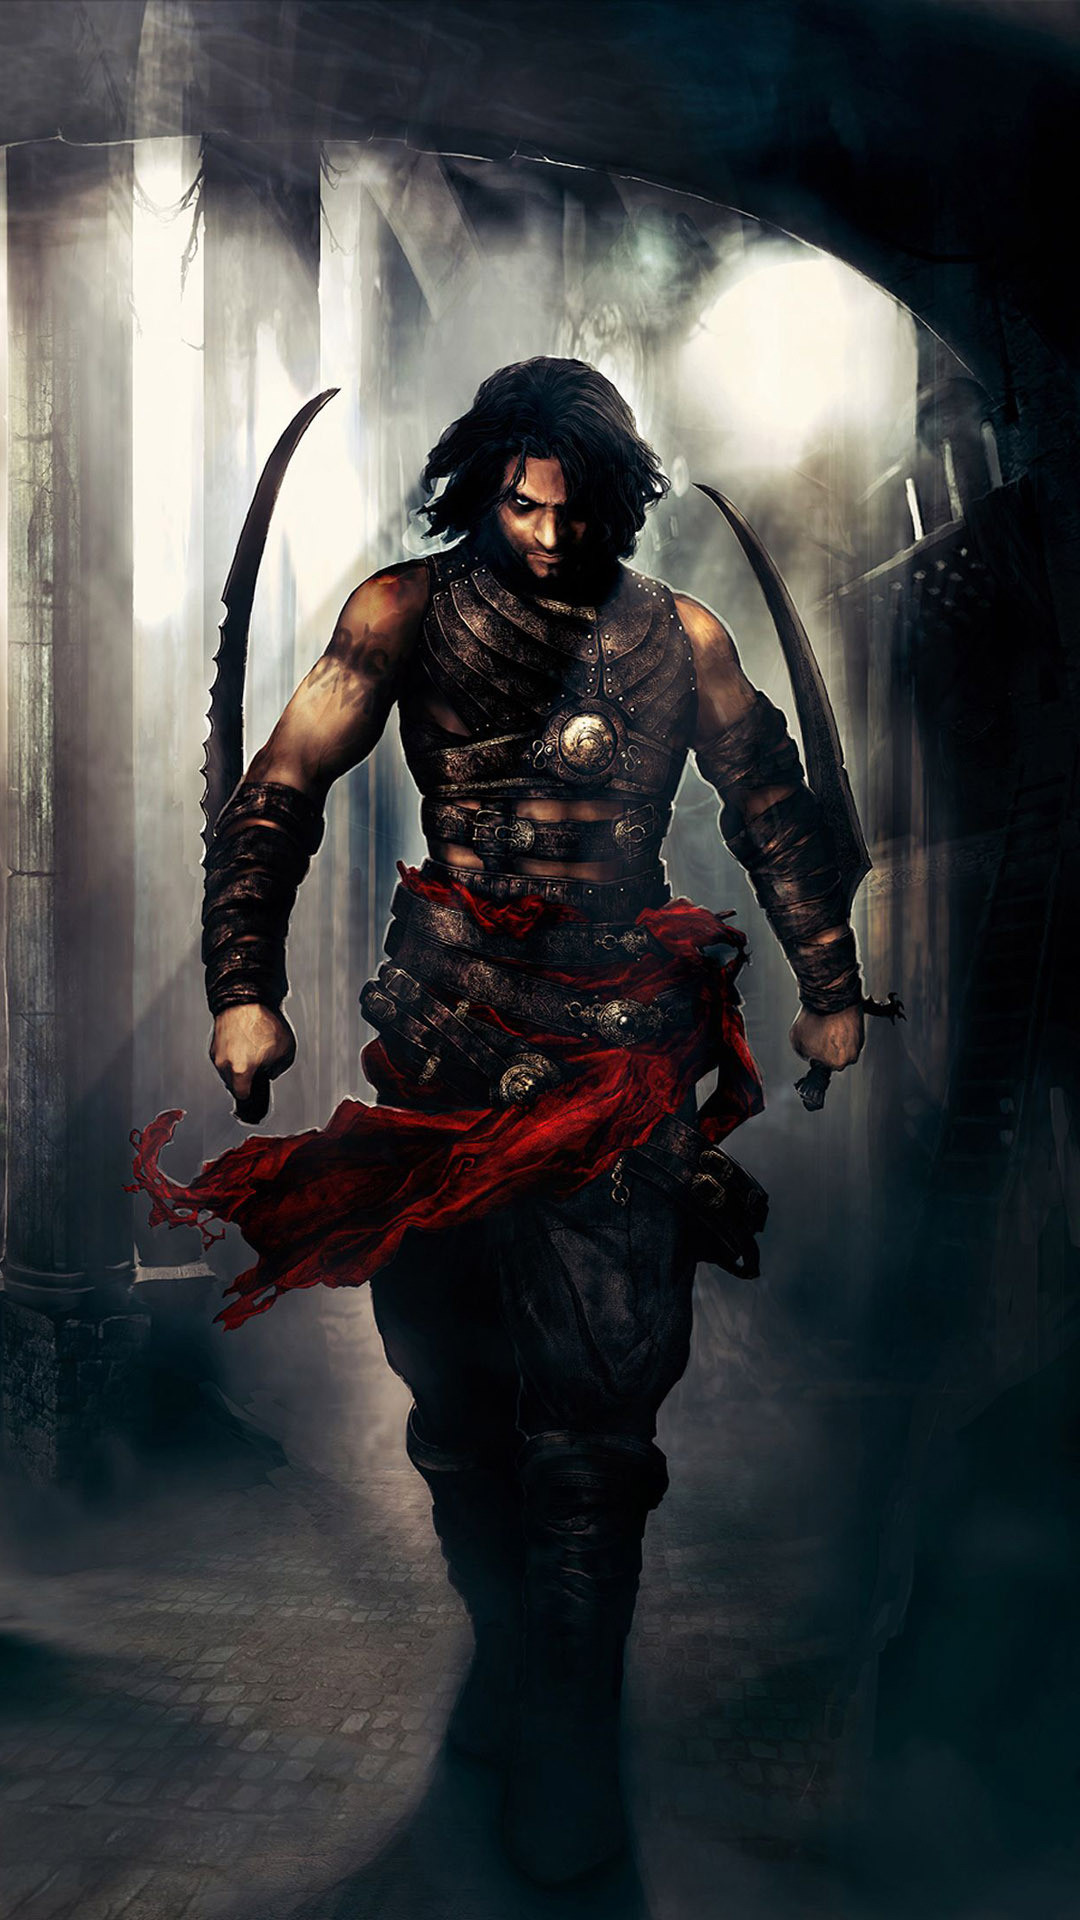 1080x1920 Prince Of Persia Game Mobile Wallpaper Full Hd Pics Smartphone Android